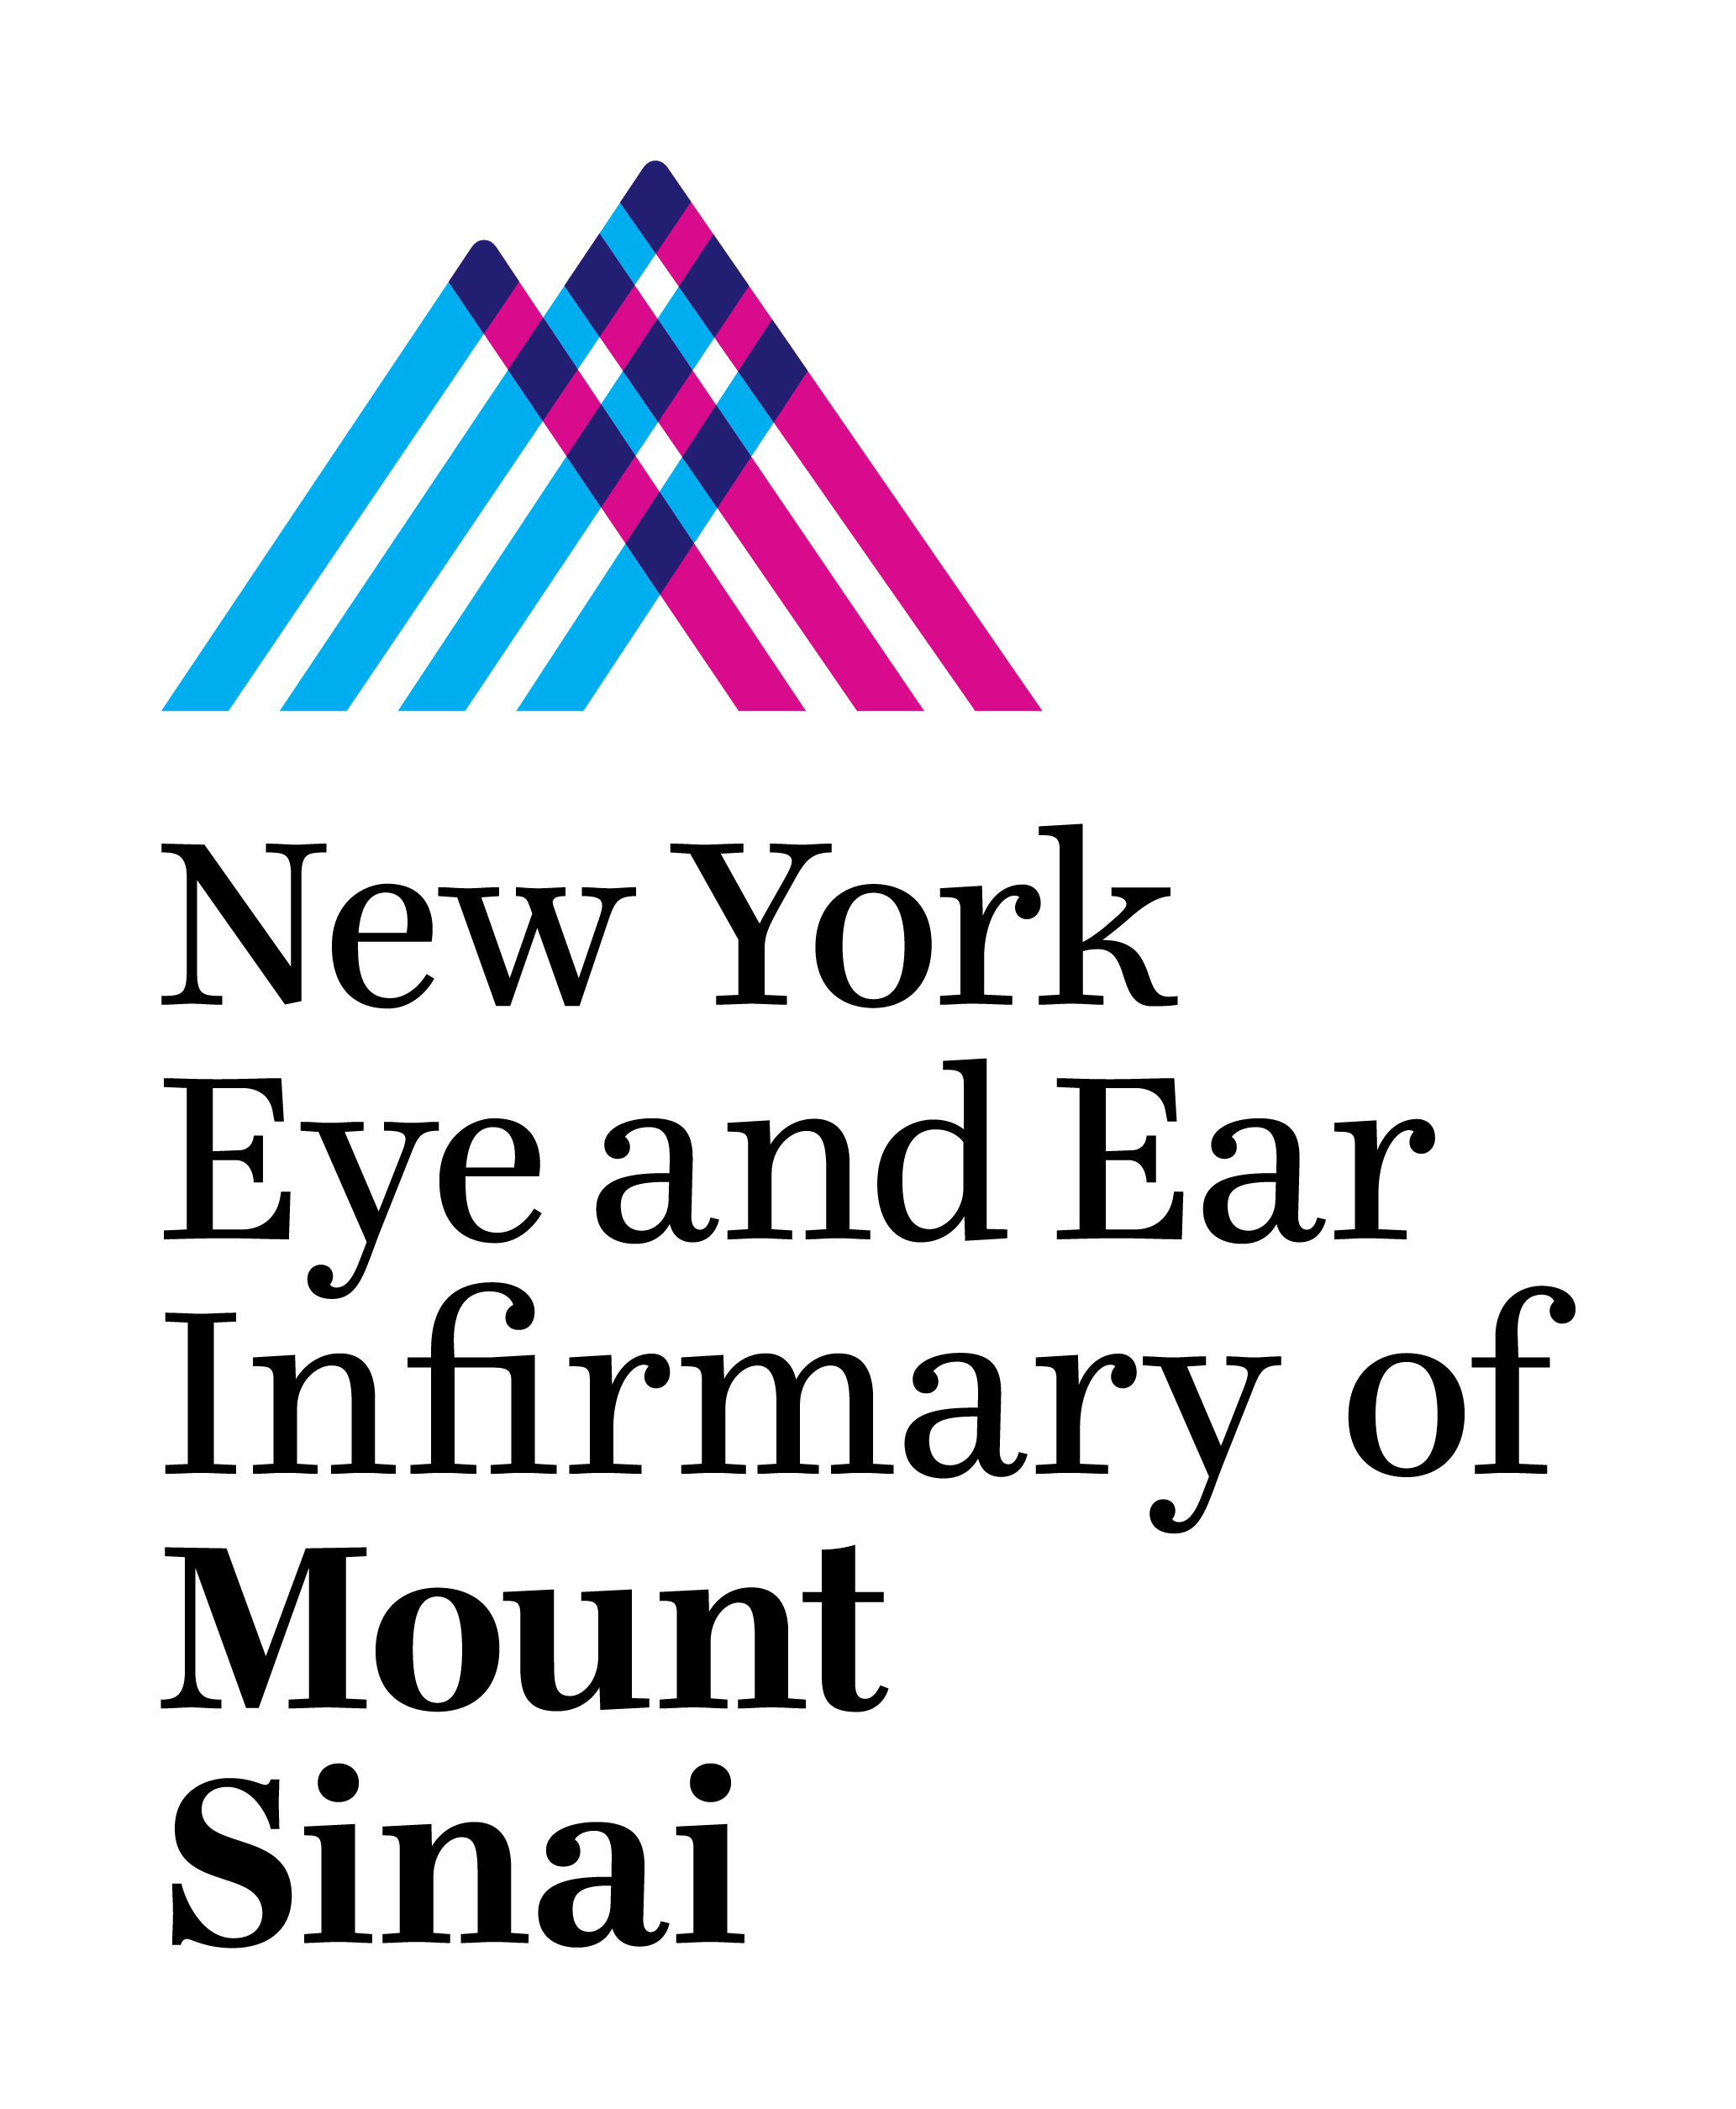 3rd Annual Endoscopic Middle Ear Surgery Dissection Course at New York Eye and Ear Infirmary of Mount Sinai